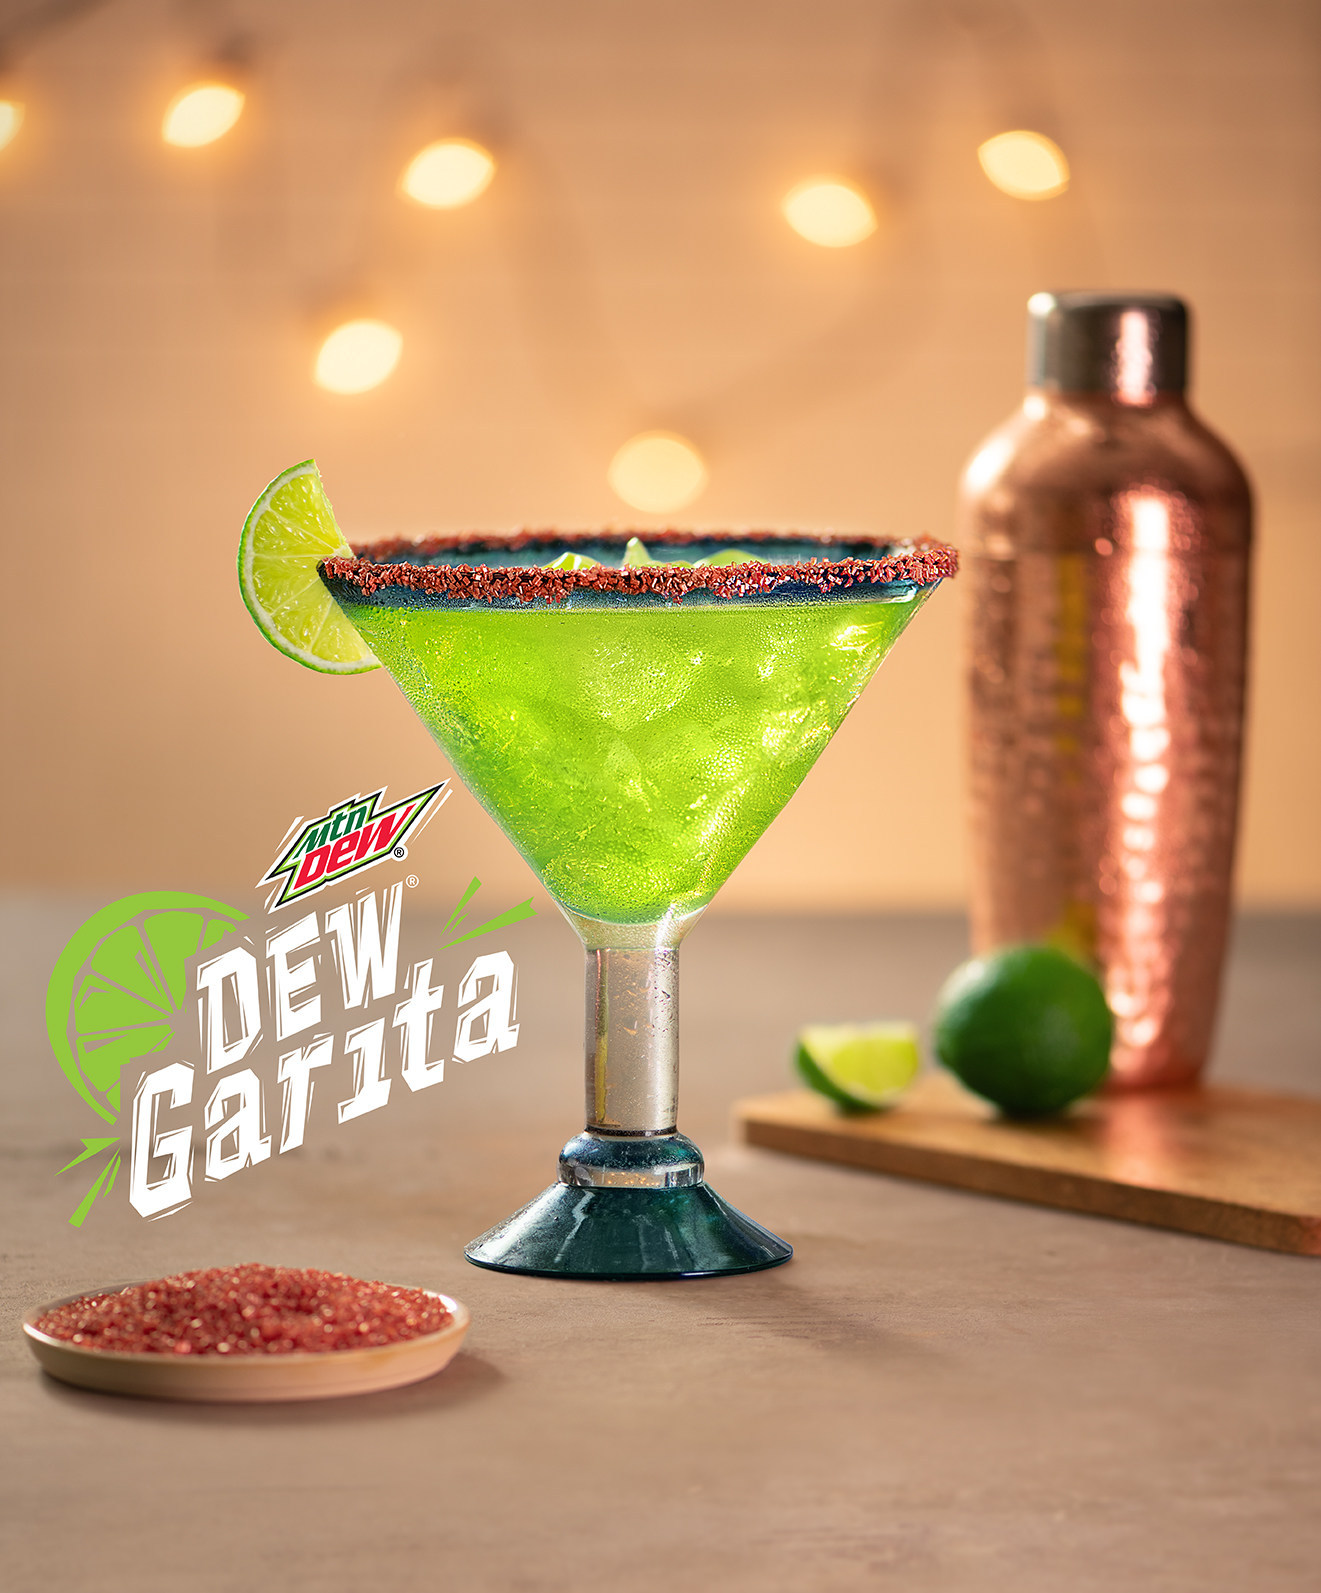 Red Lobster and PepsiCo Kick-Off Partnership With 'Dew Garita'